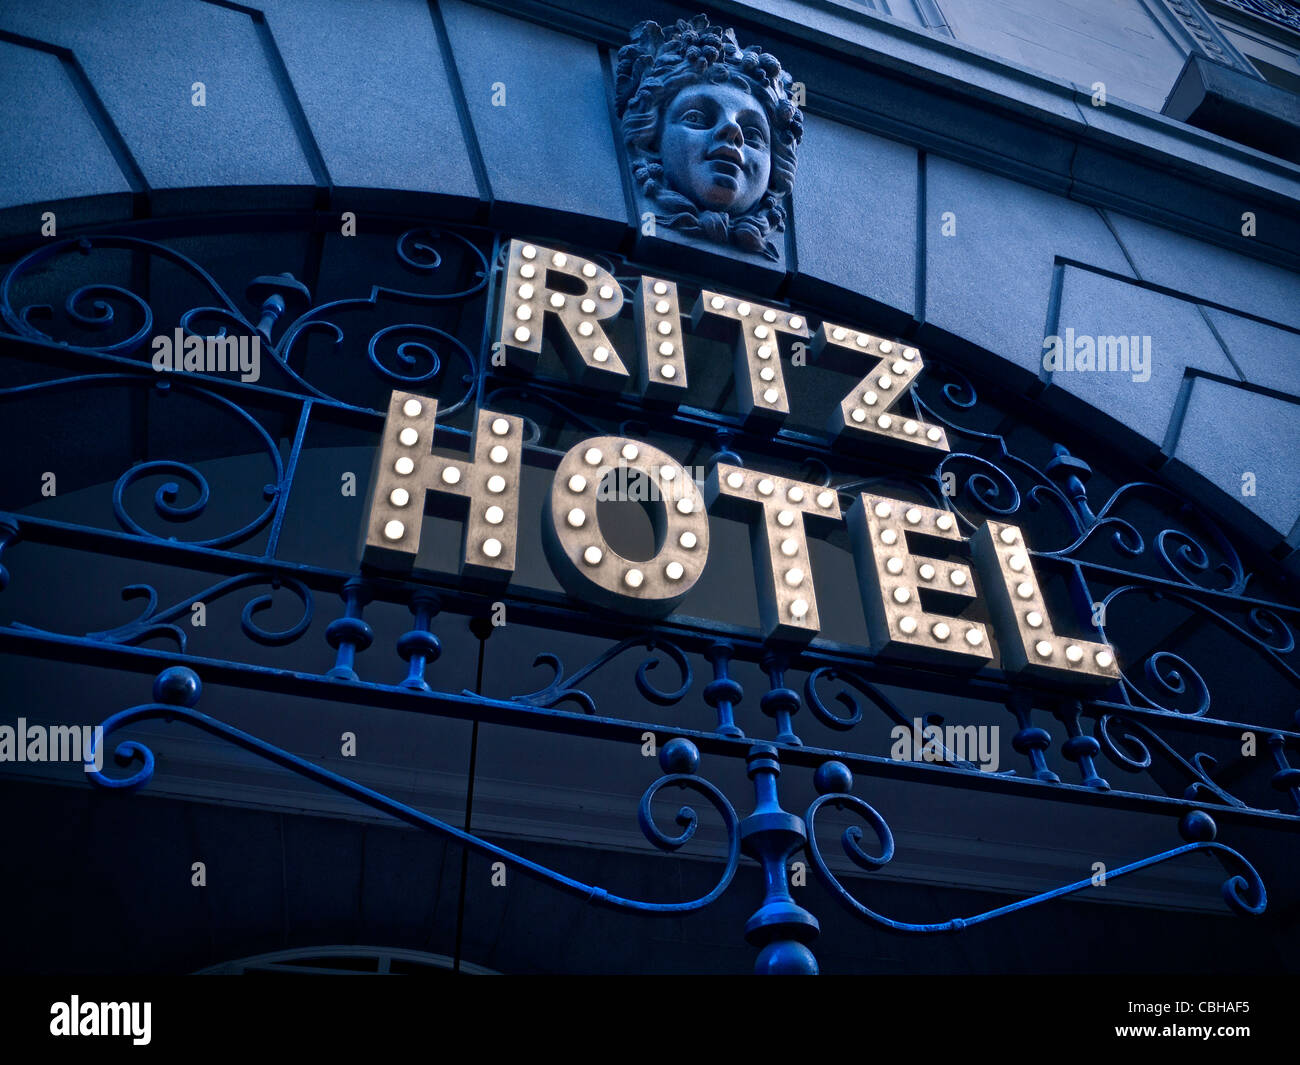 Entrance sign to The Ritz Hotel a luxury 5-star hotel in Piccadilly London - Stock Image